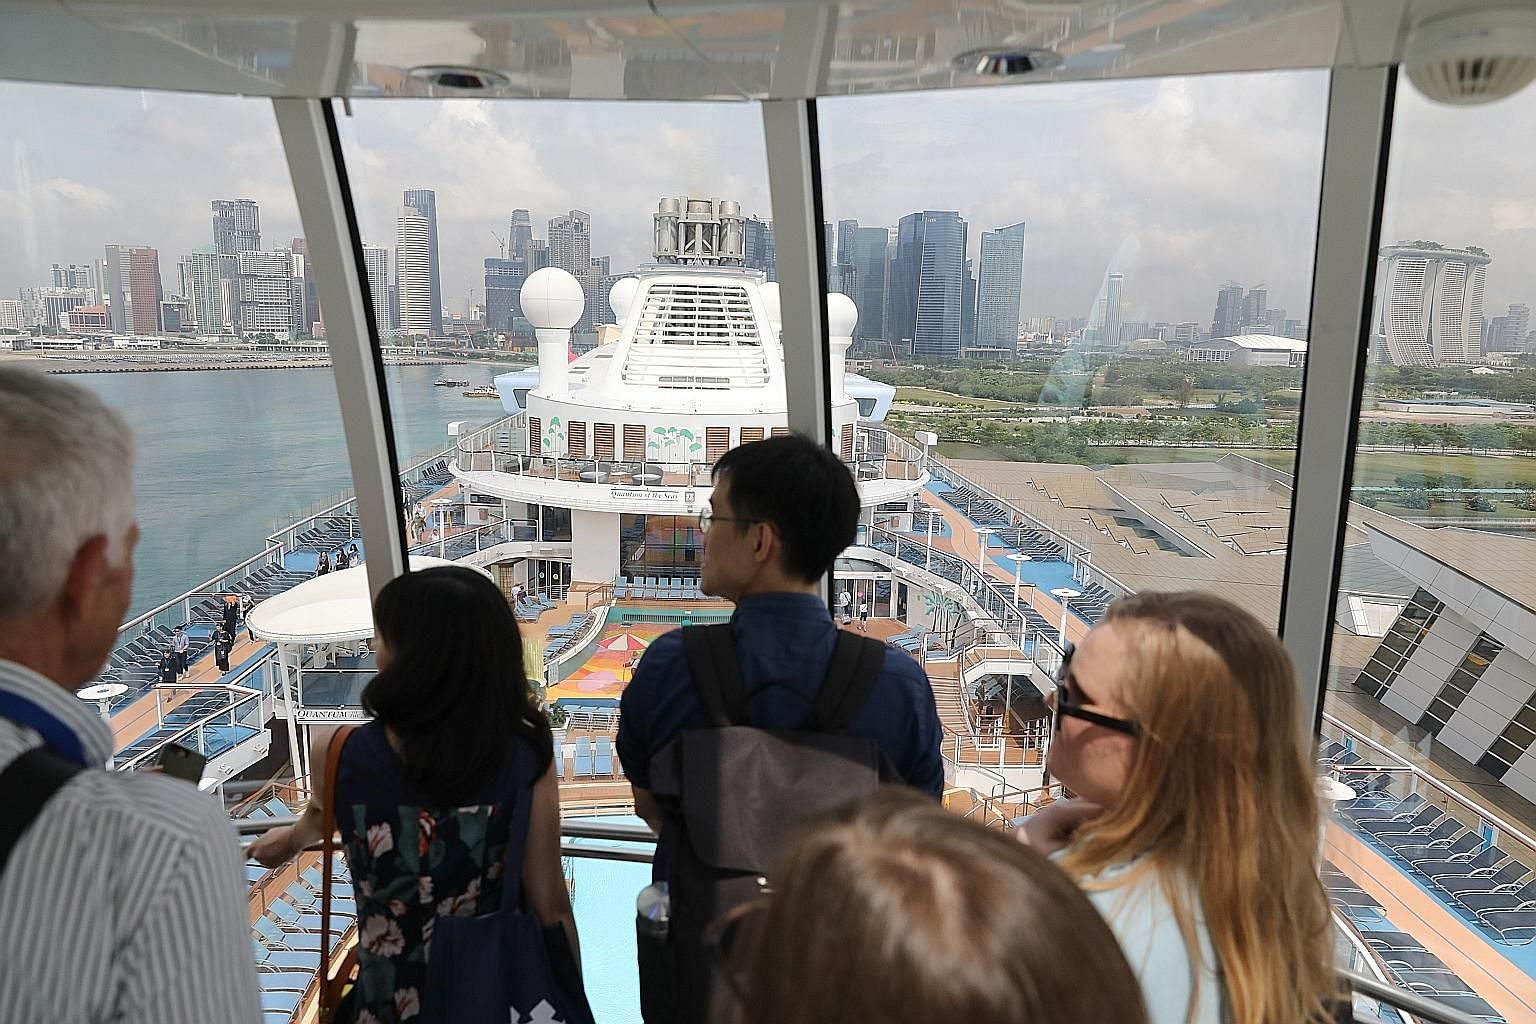 Passengers on board Quantum Of The Seas taking in views of the Singapore skyline from North Star, an observational capsule that offers 360-degree views.